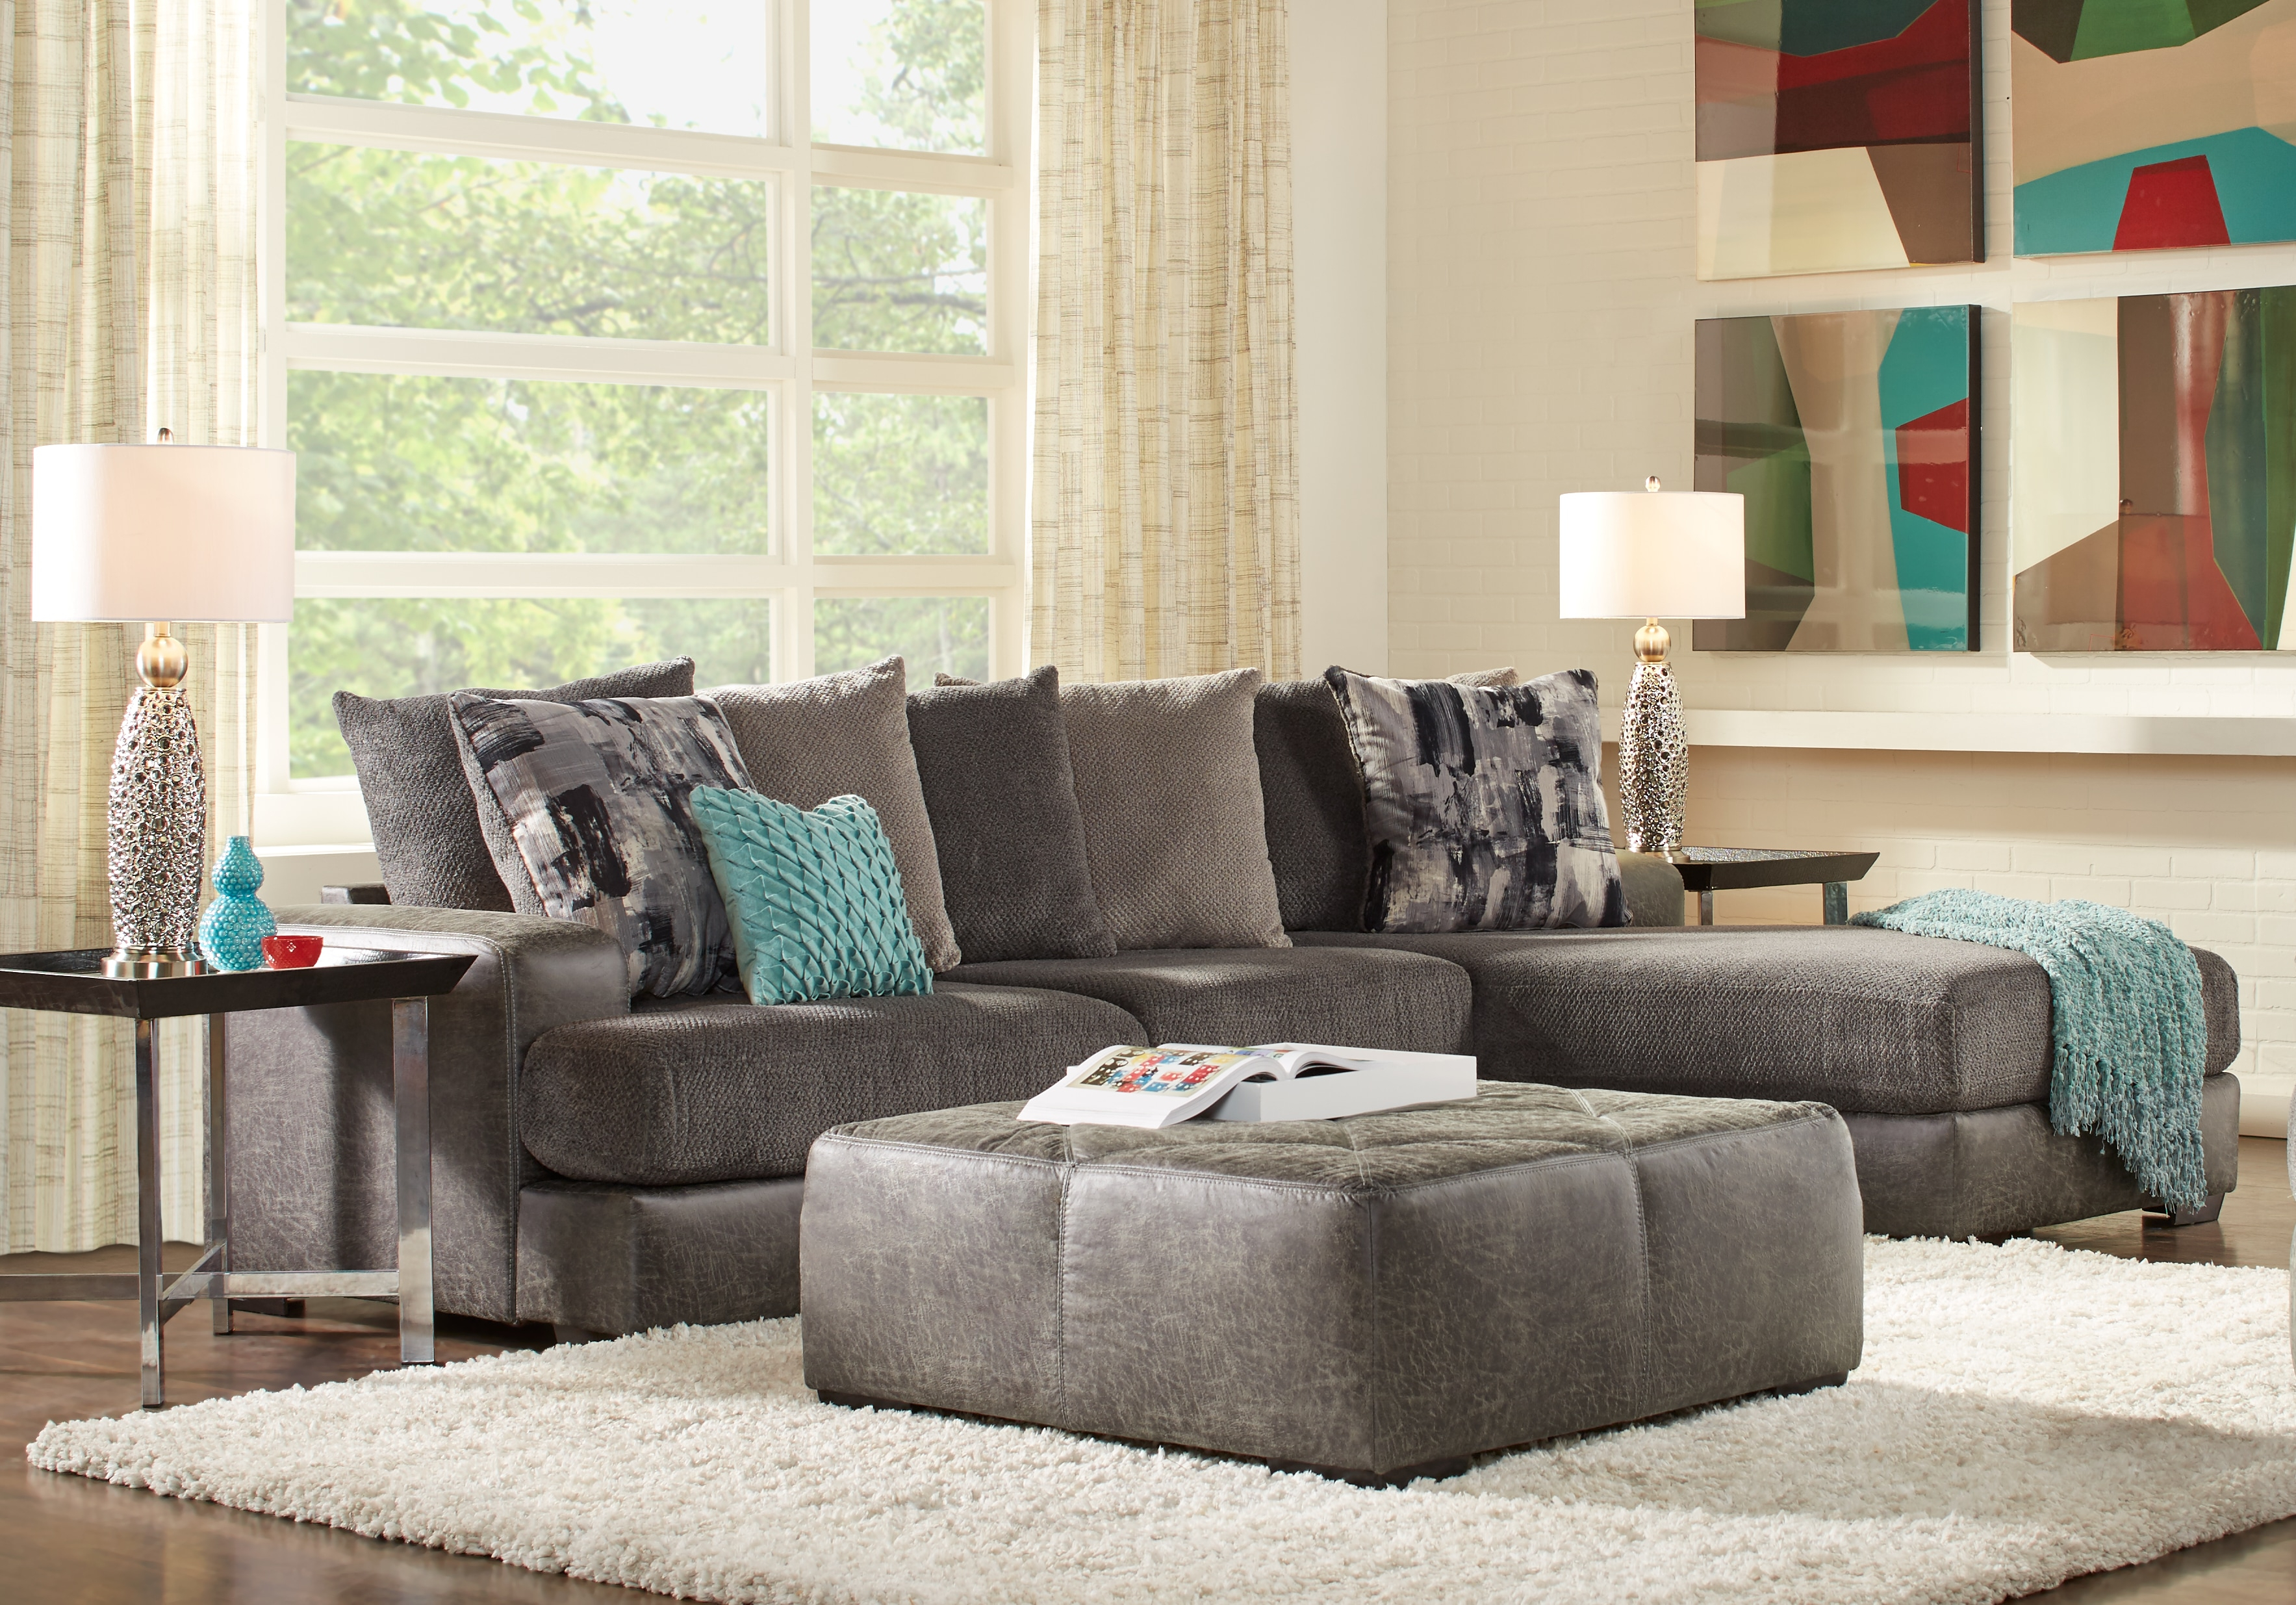 Foster Square Graphite 2 Pc Sectional – Living Room Sets (Gray) Throughout Mcdade Graphite Sofa Chairs (Image 8 of 20)